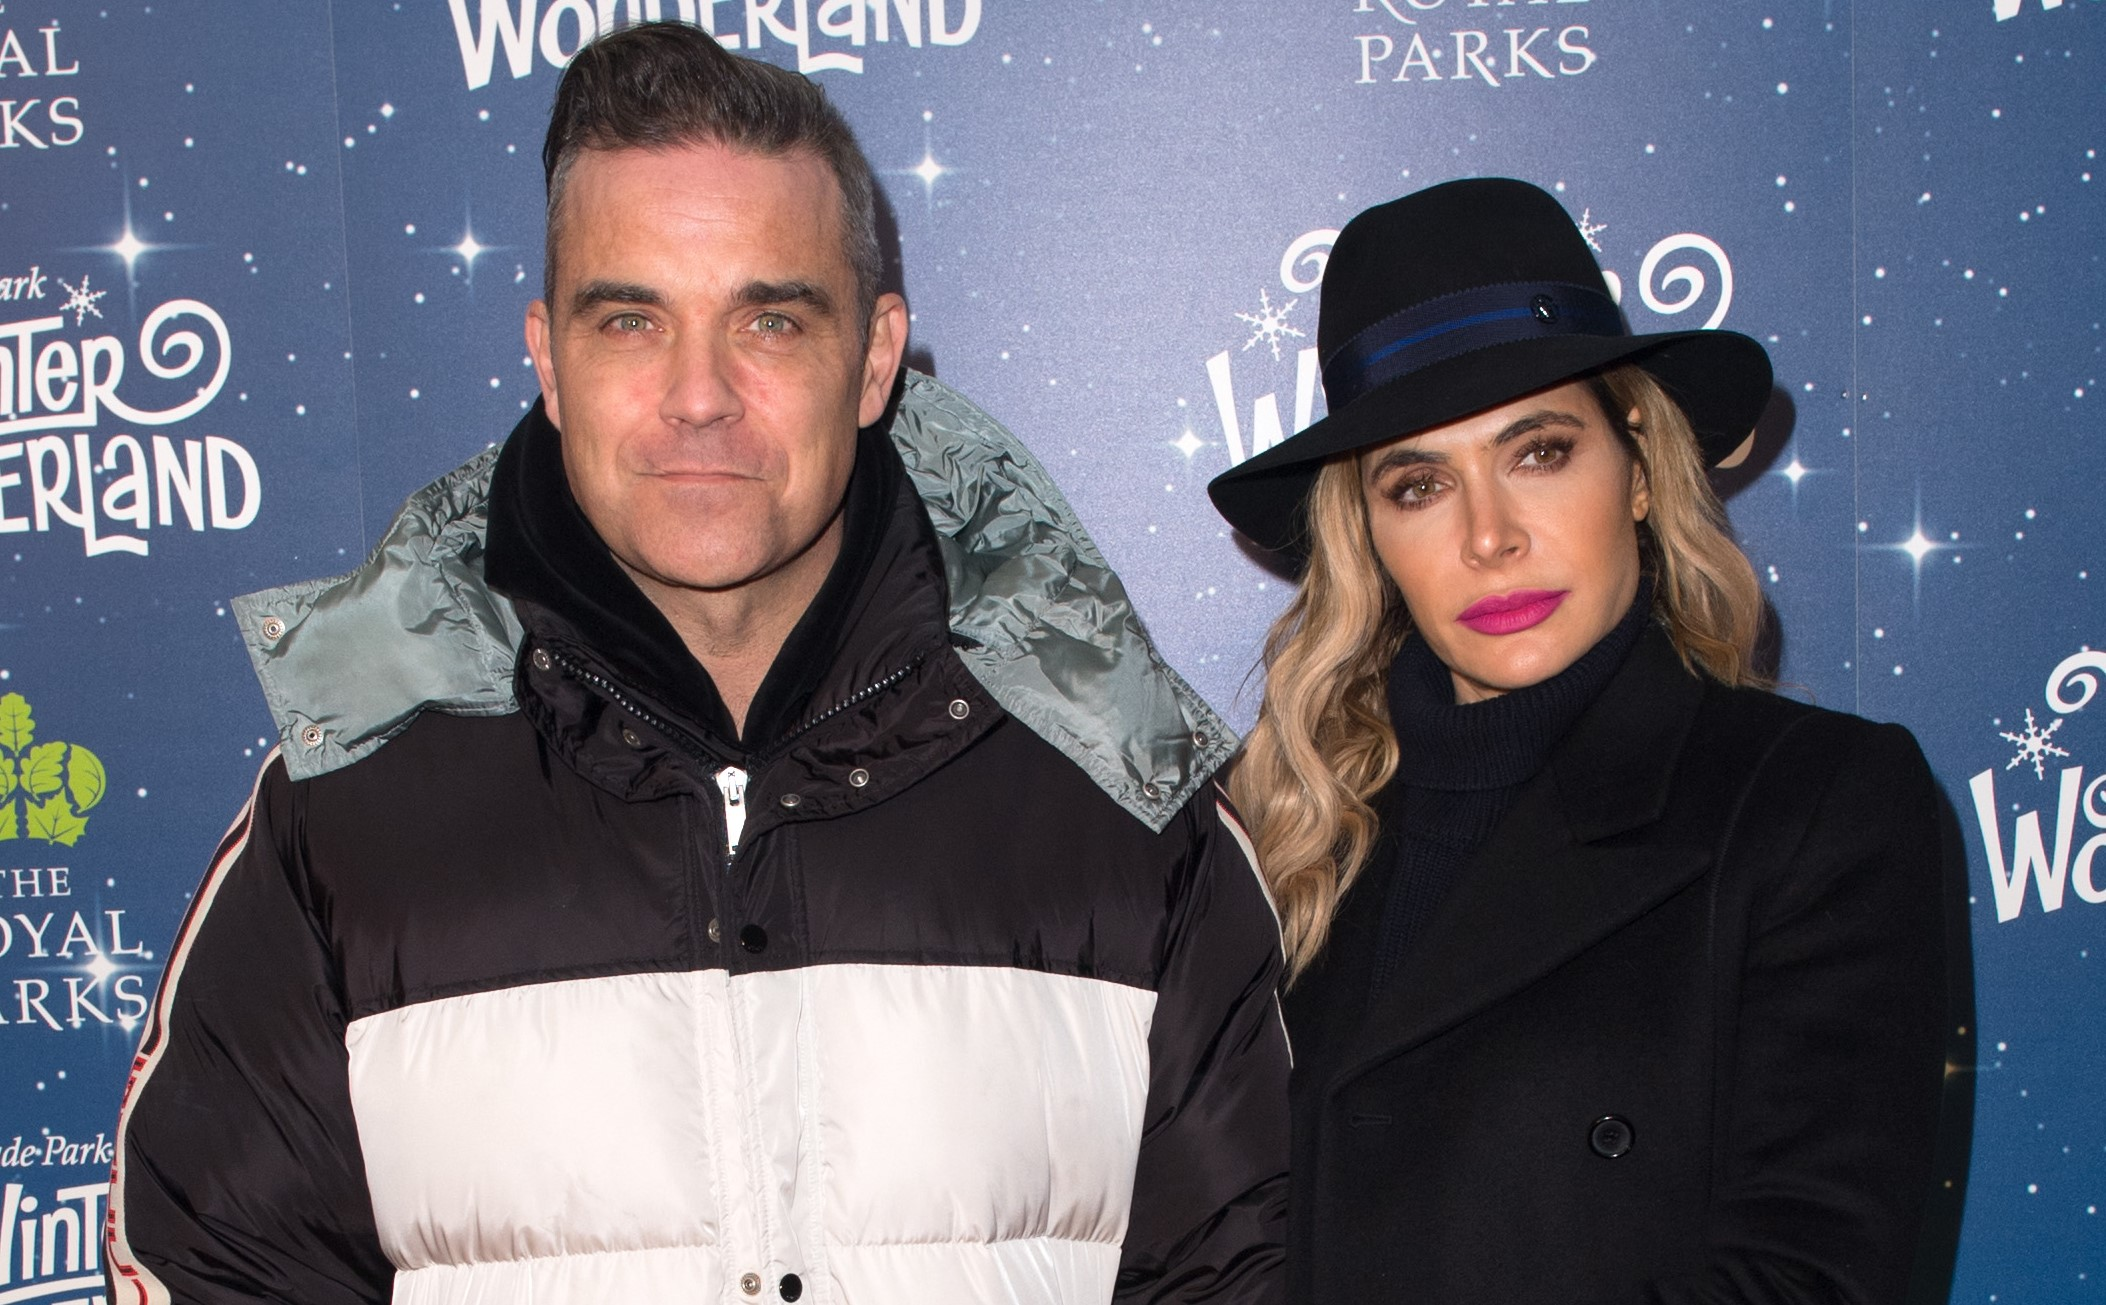 Robbie Williams and wife Ayda Field at the Hyde Park Winter Wonderland